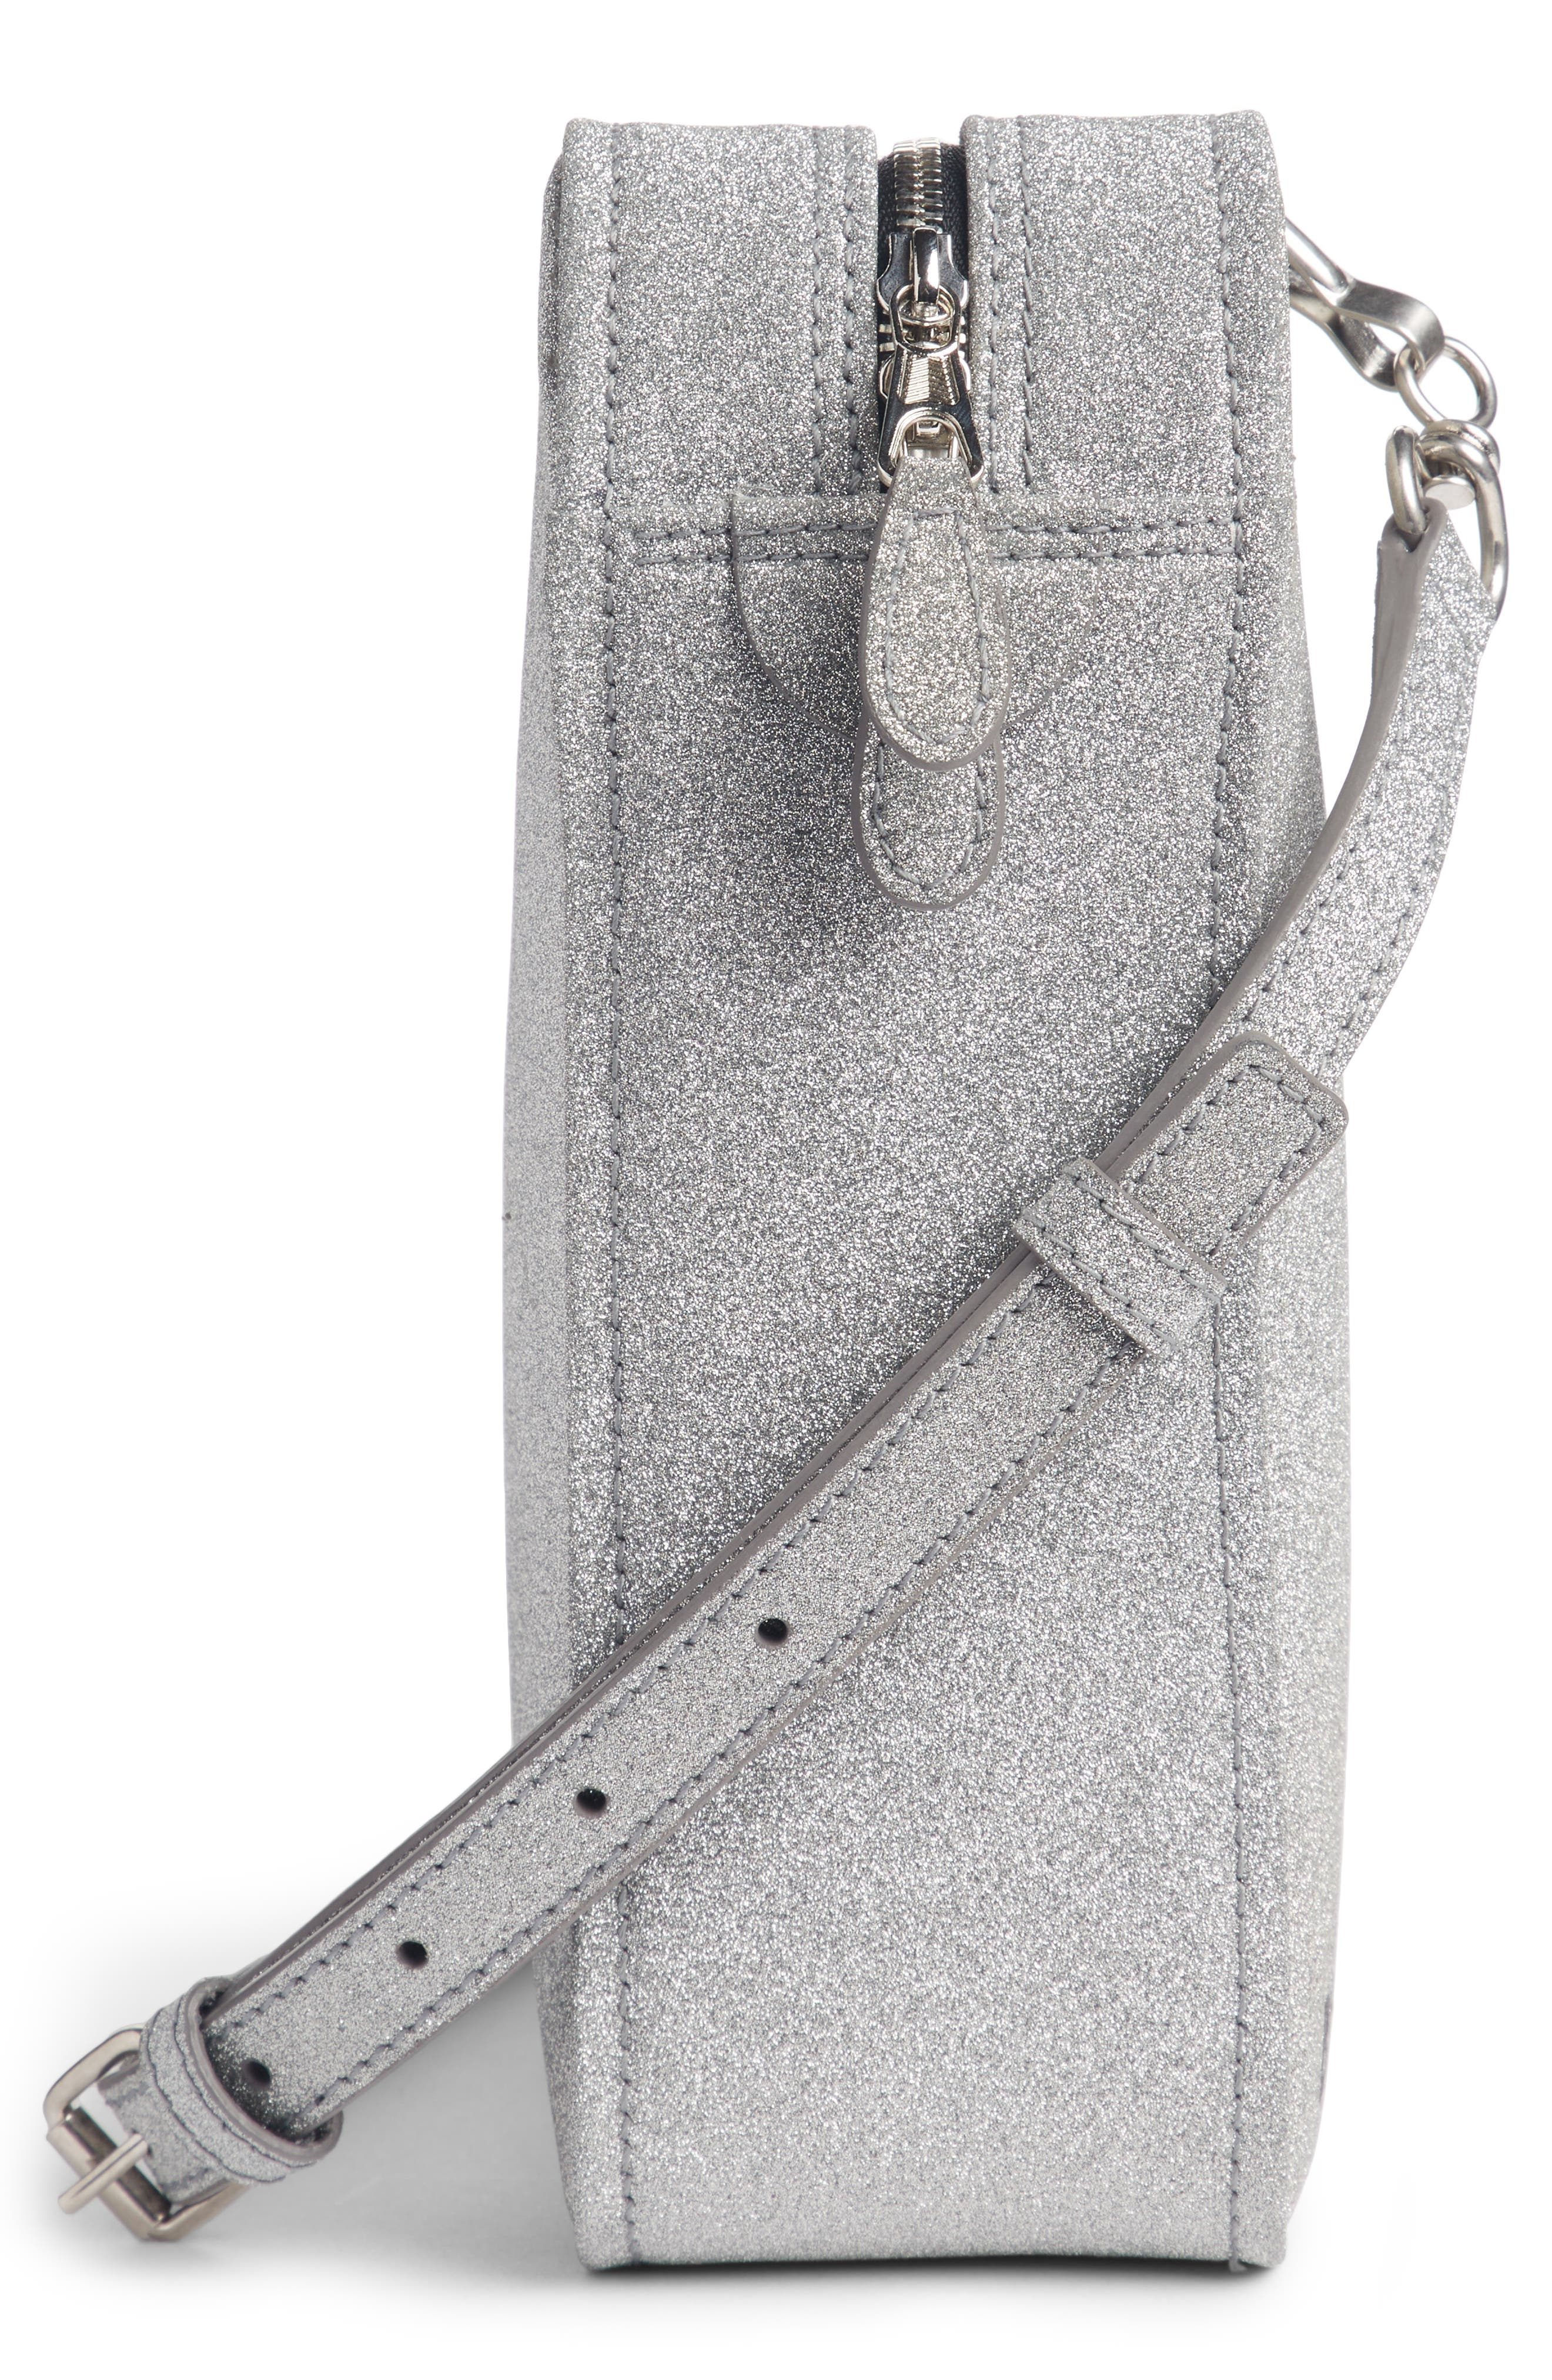 Extra Small Glitter Triangle Leather Bag,                             Alternate thumbnail 4, color,                             Argent/ Noir